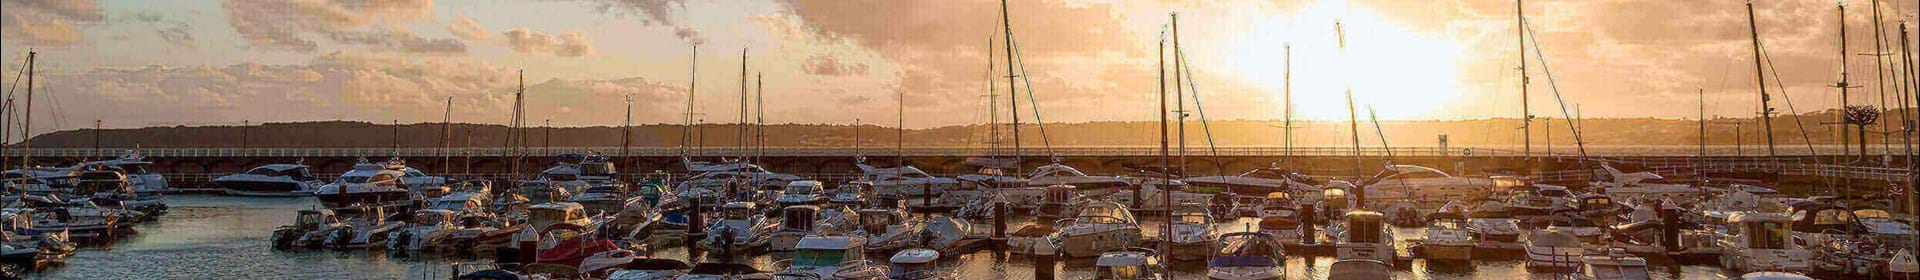 Sun setting over Jersey marina